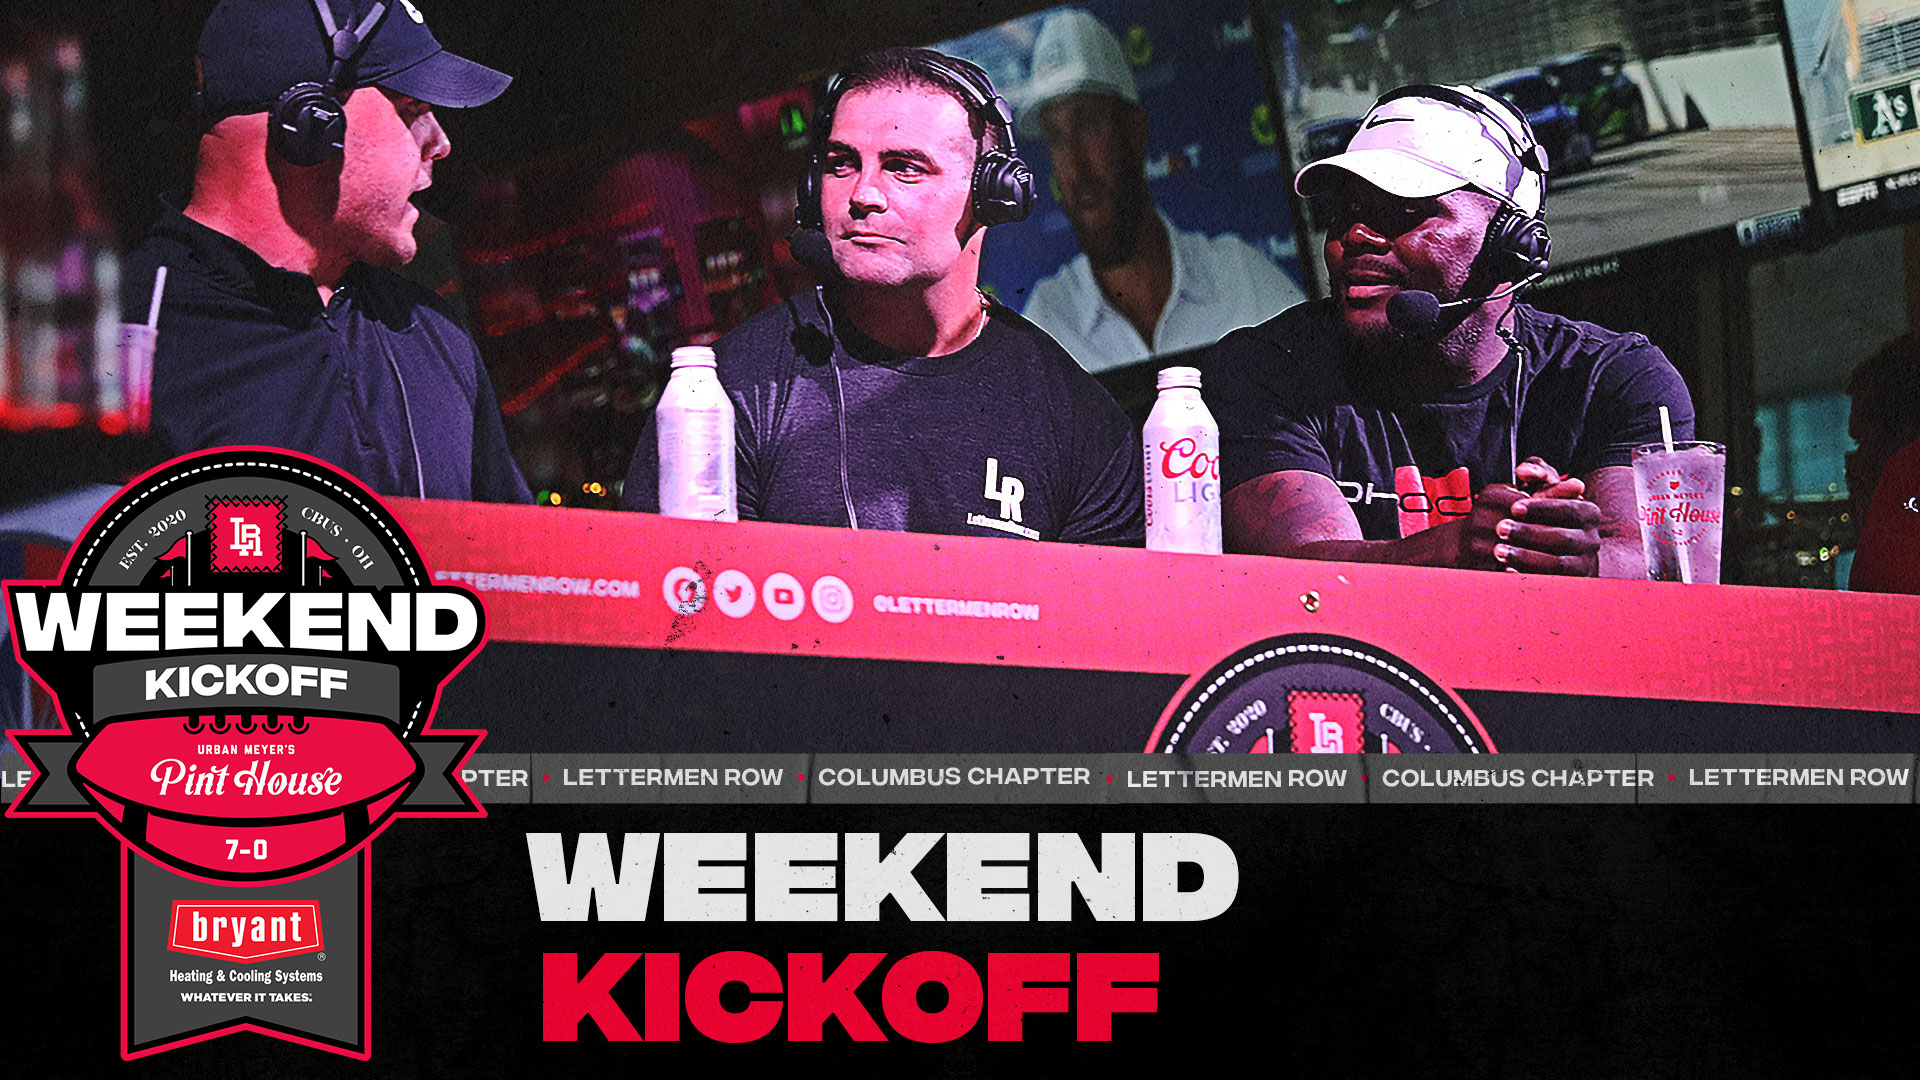 Weekend-Kickoff-featured-image